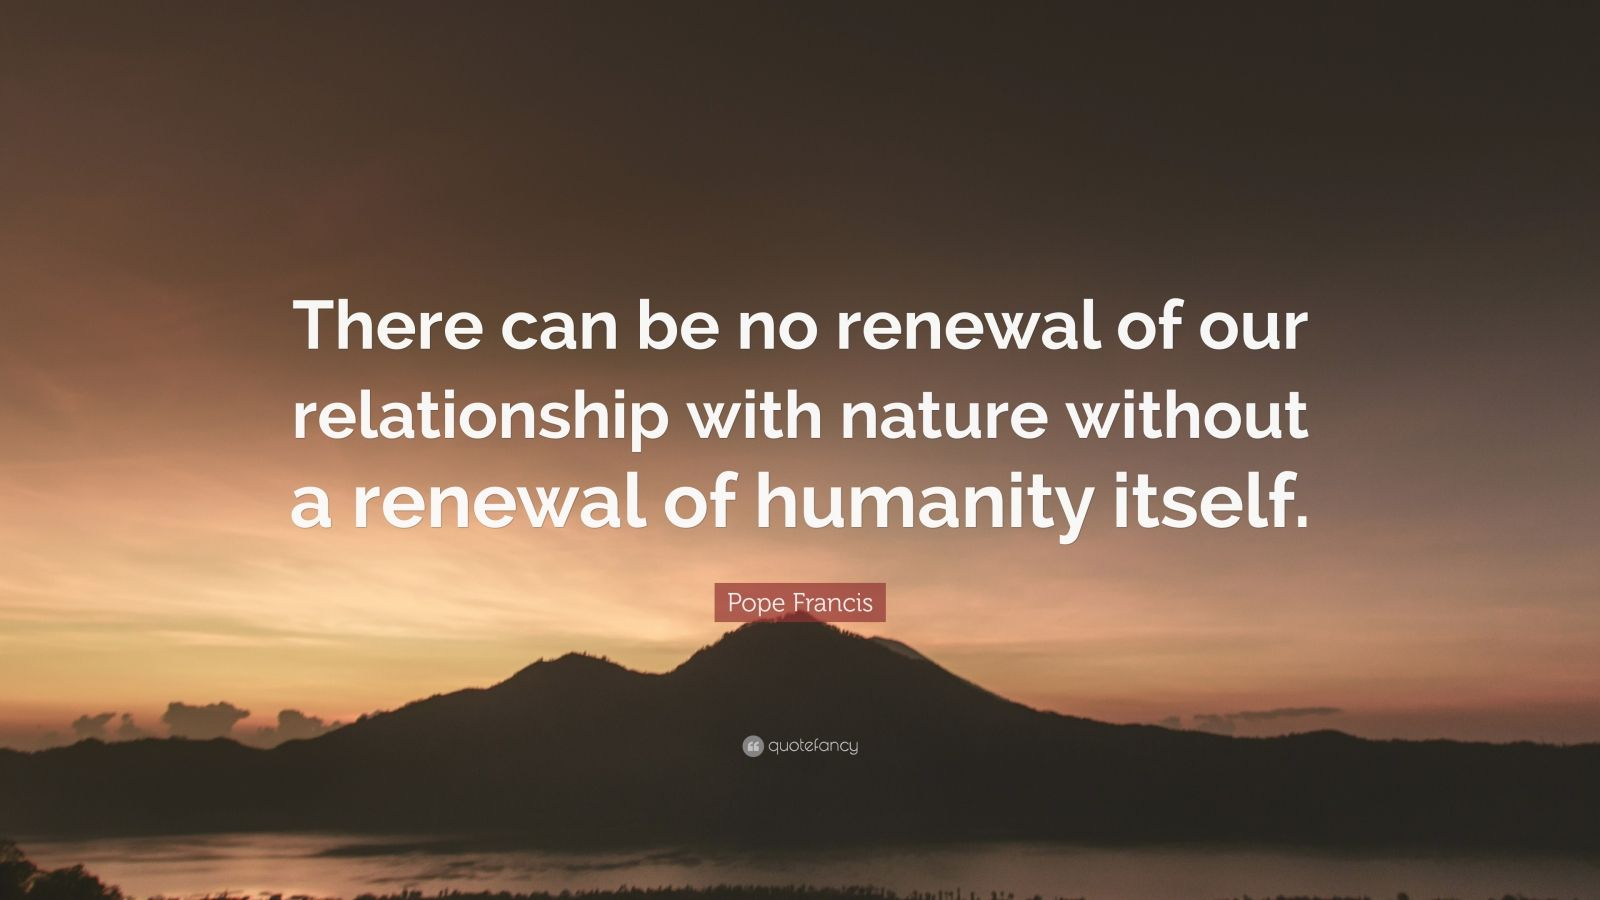 my relationship with nature Like most children, when i was a little girl i was immersed in the mystery of nature there was an inherent connection i felt to it that waved and weaned in correlation with what i was going through in specific chapters of my life.